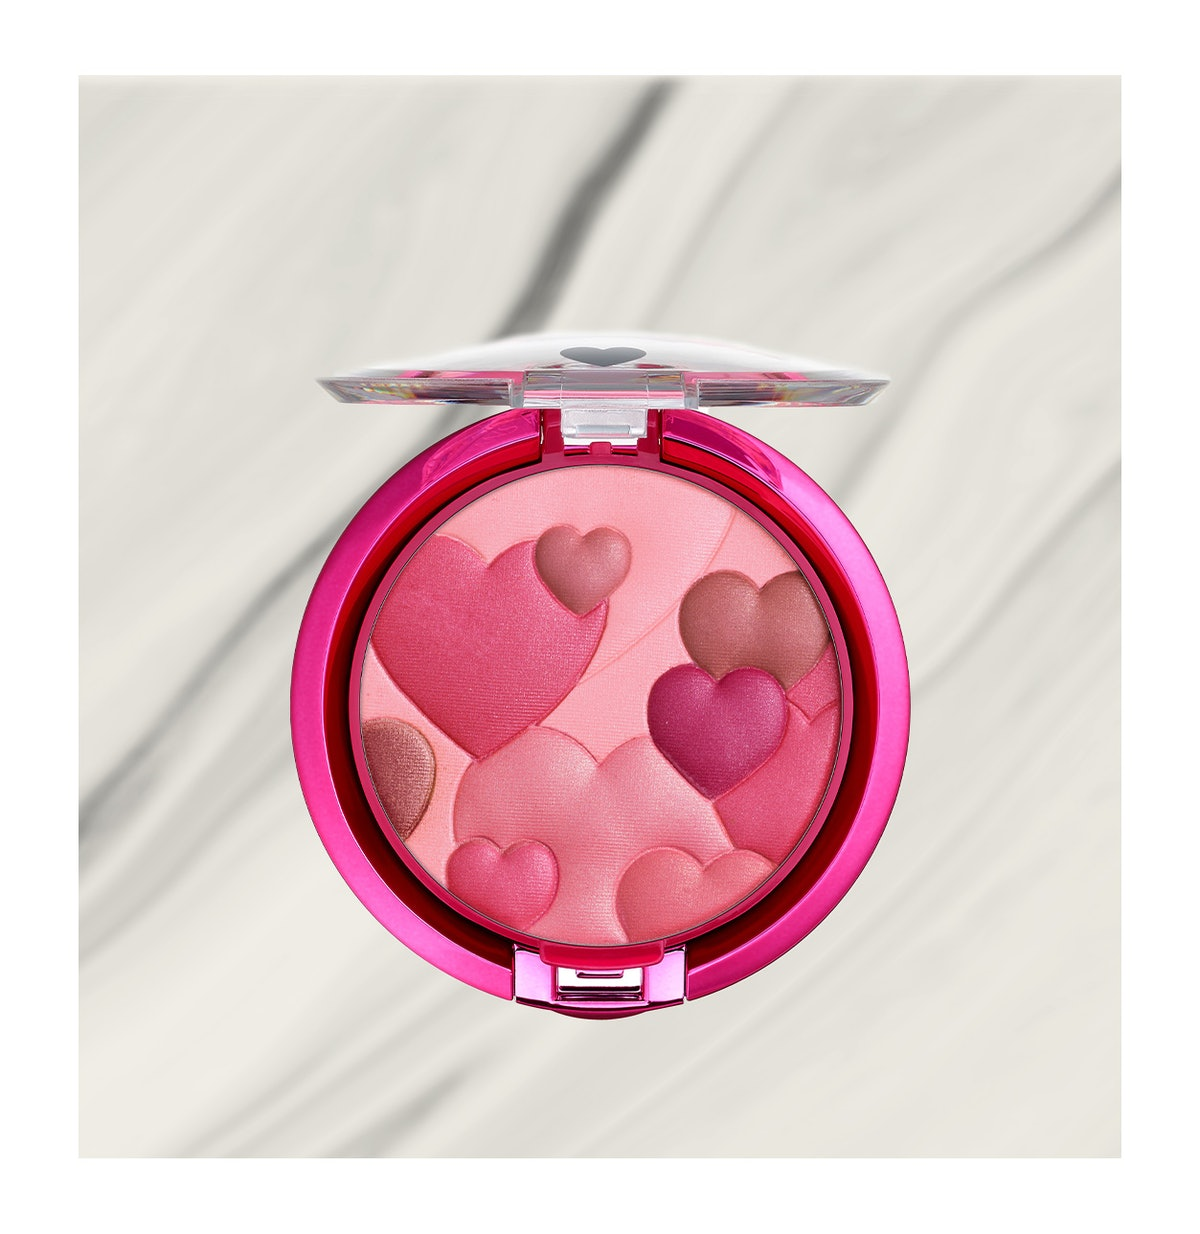 Happy Booster Happy Glow Multi-Colored Blush in Rose